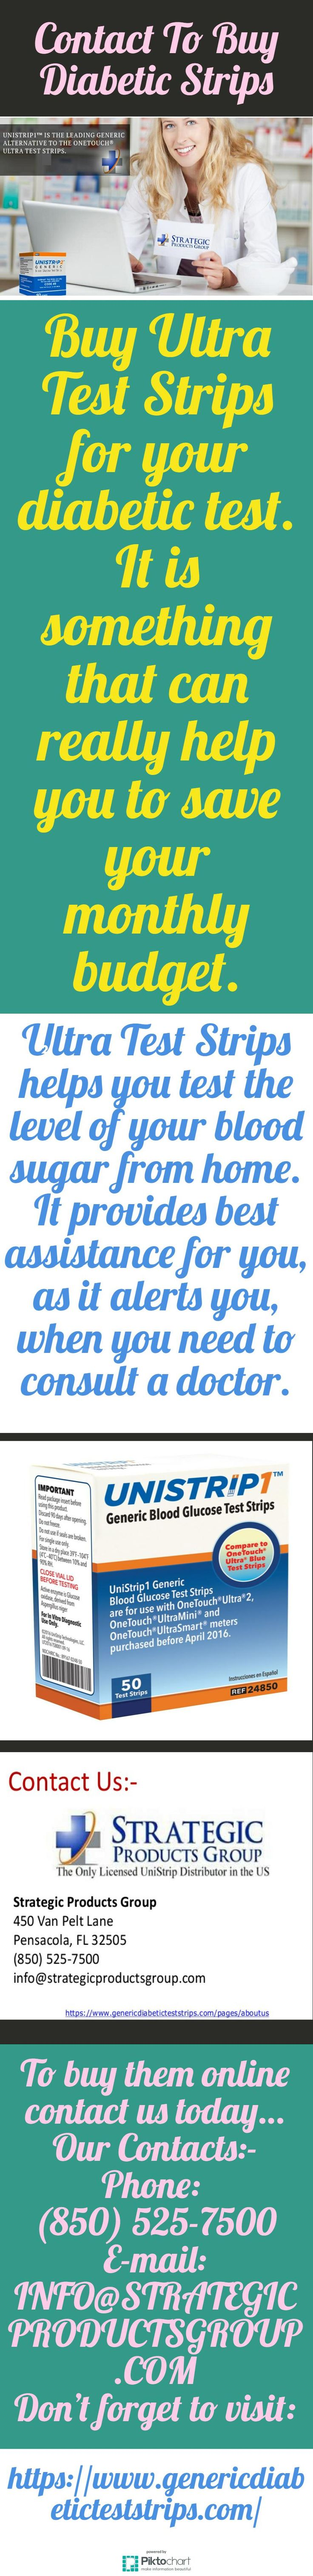 Our Diabetic Strips include a blood glucose monitor and test strip. We offer significant discounts on the aforementioned products. Contact To Buy Diabetic Strips, and visit our website: https://www.genericdiabeticteststrips.com/